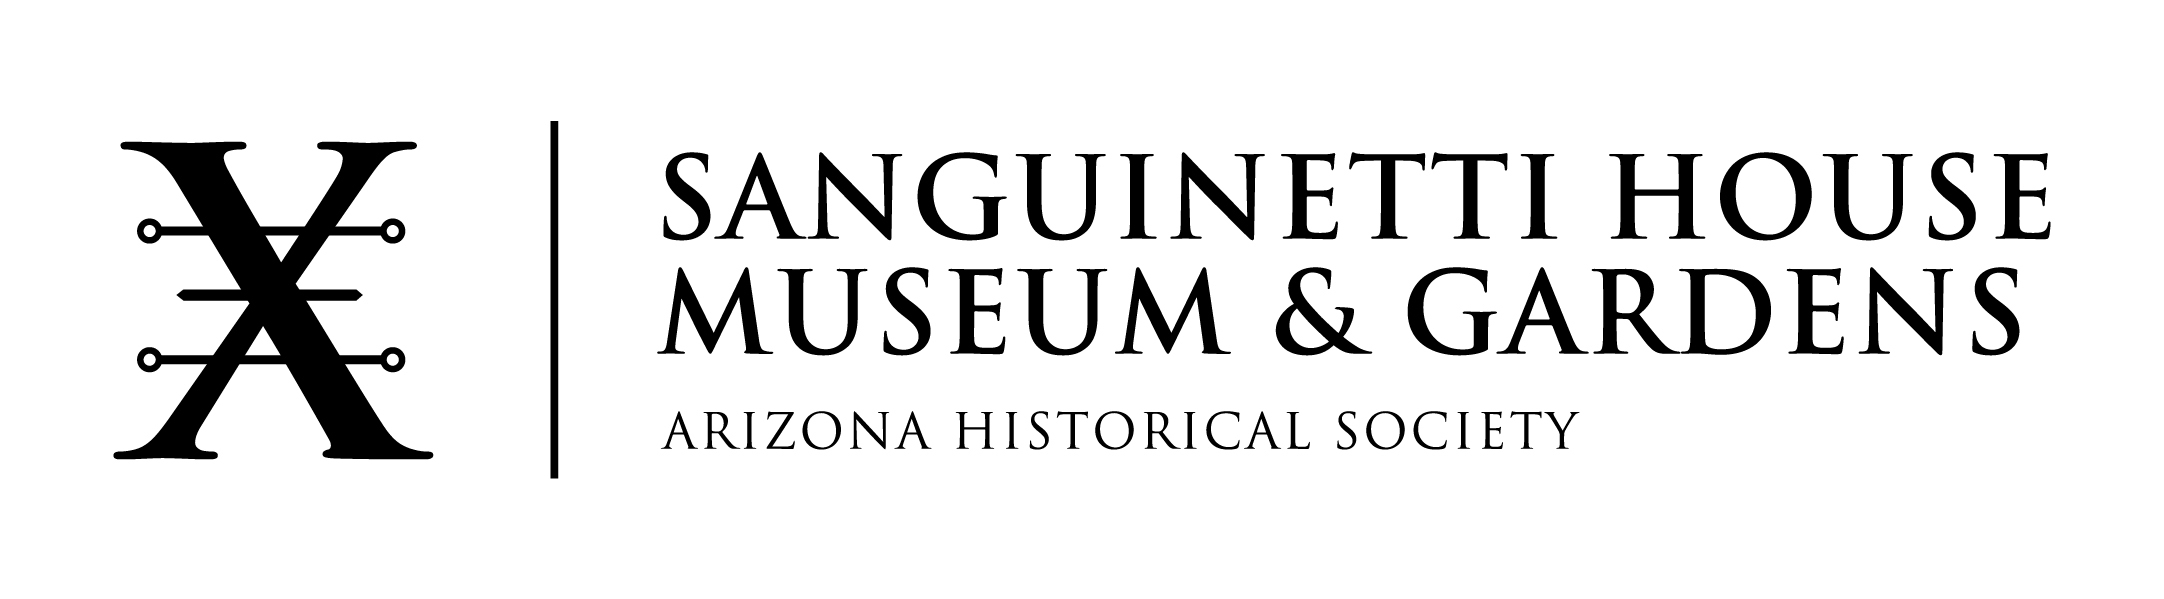 Ahs sanguinetti house logo final black